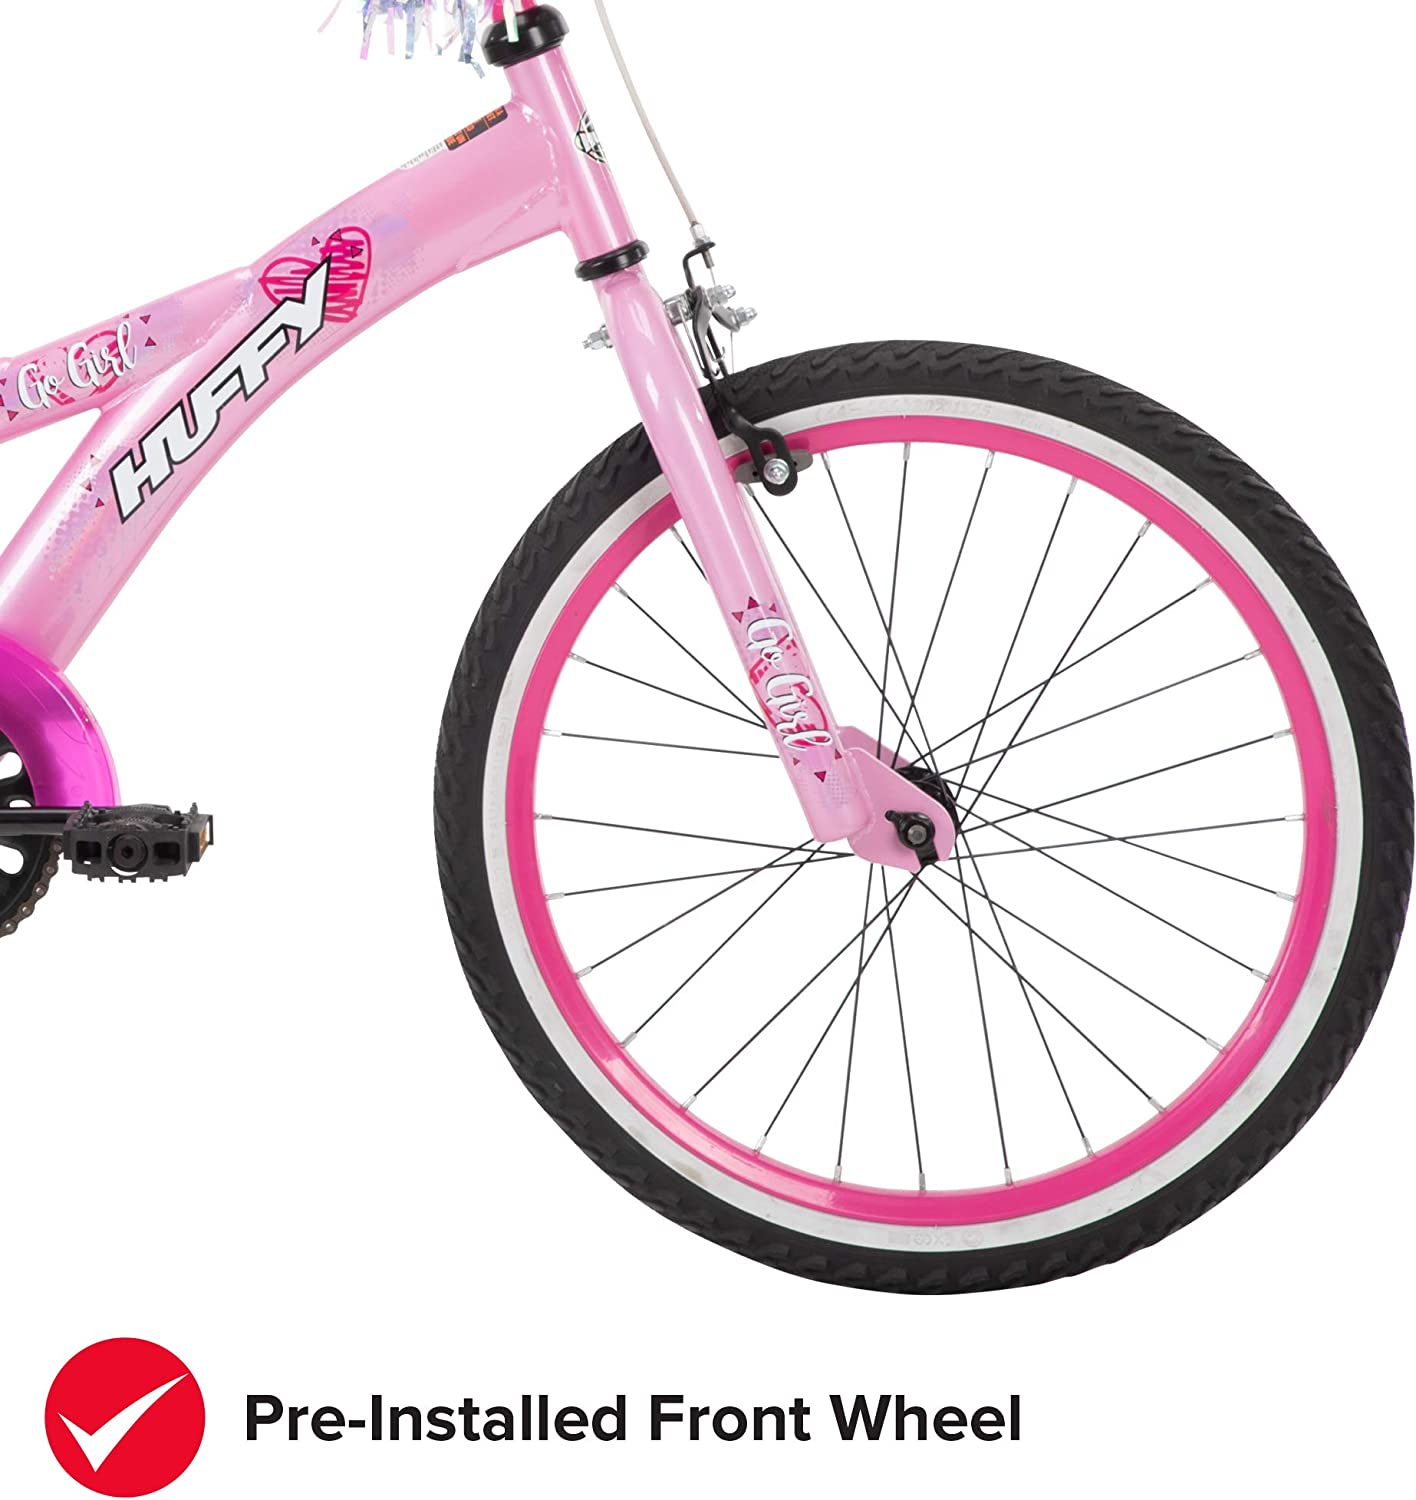 Huffy Kids Bike Go Girl /& Ignyte 20 inch Quick Connect or Regular Assembly Kickstand Included